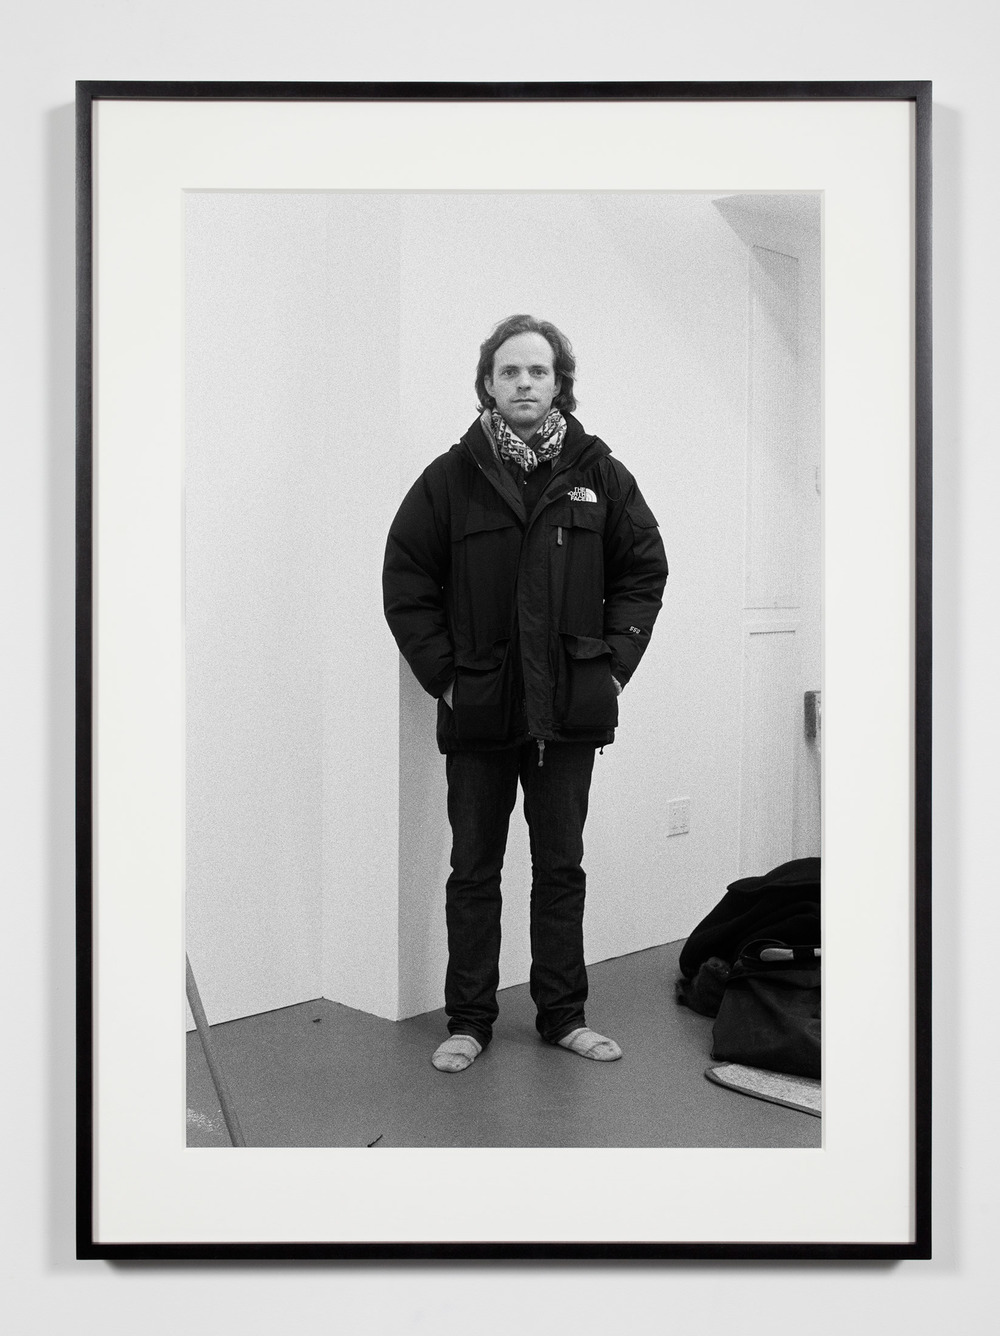 Artist, New York, New York, February 28, 2009    2011   Epson Ultrachrome K3 archival ink jet print on Hahnemühle Photo Rag paper  36 3/8 x 26 3/8 inches   Industrial Portraits, 2008–